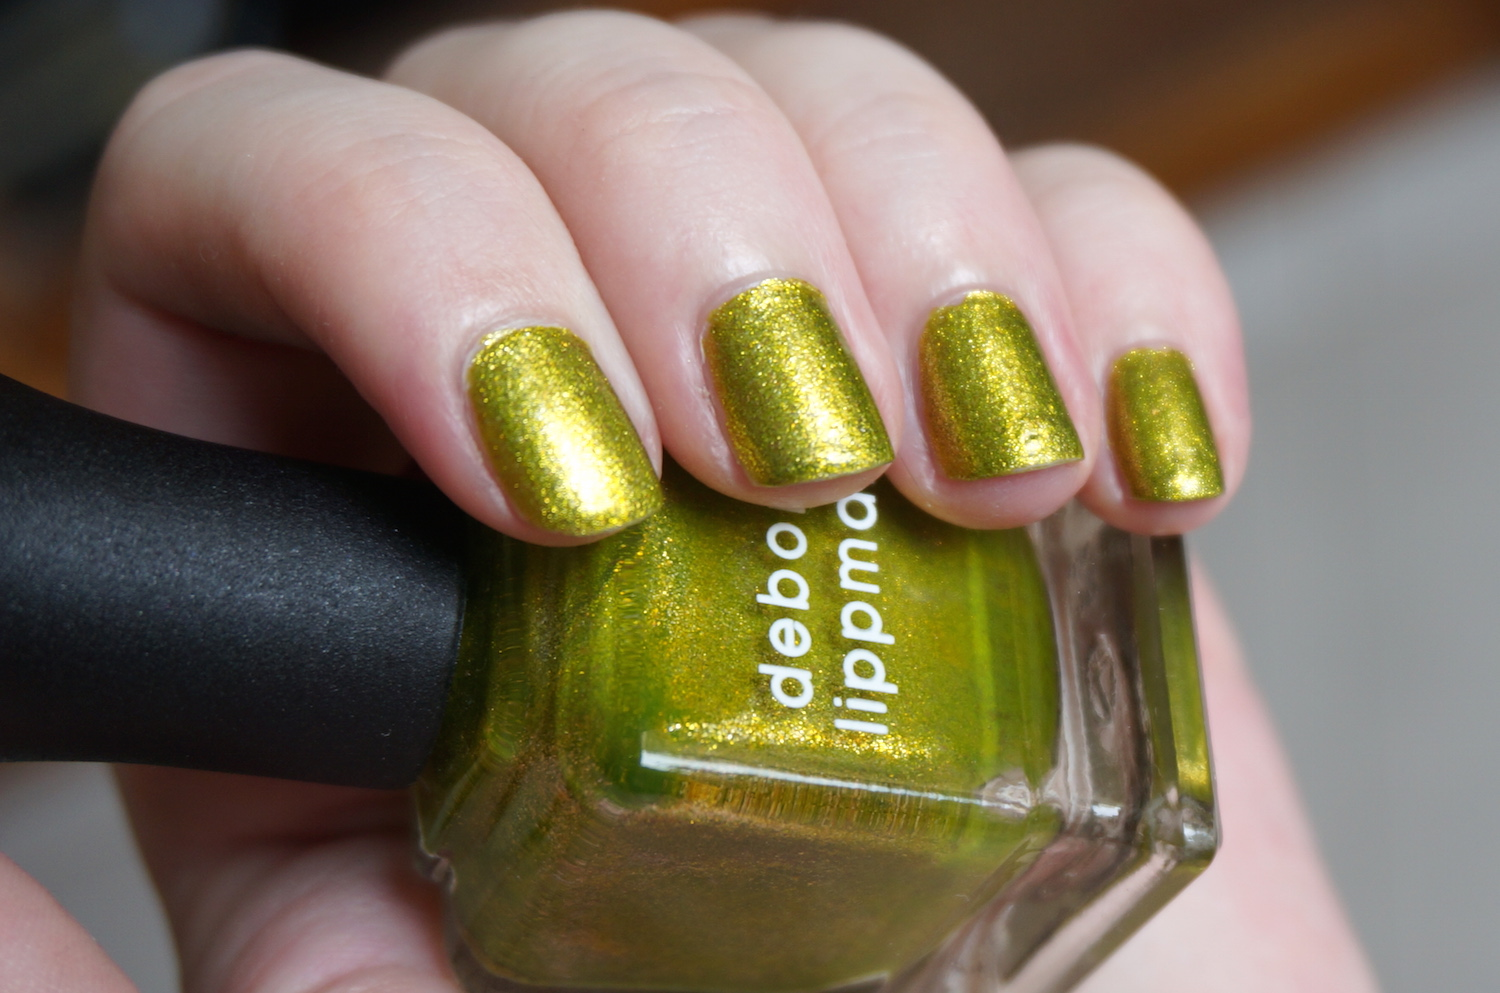 Deborah Lippman – Weird Science nail polish review | Through The ...